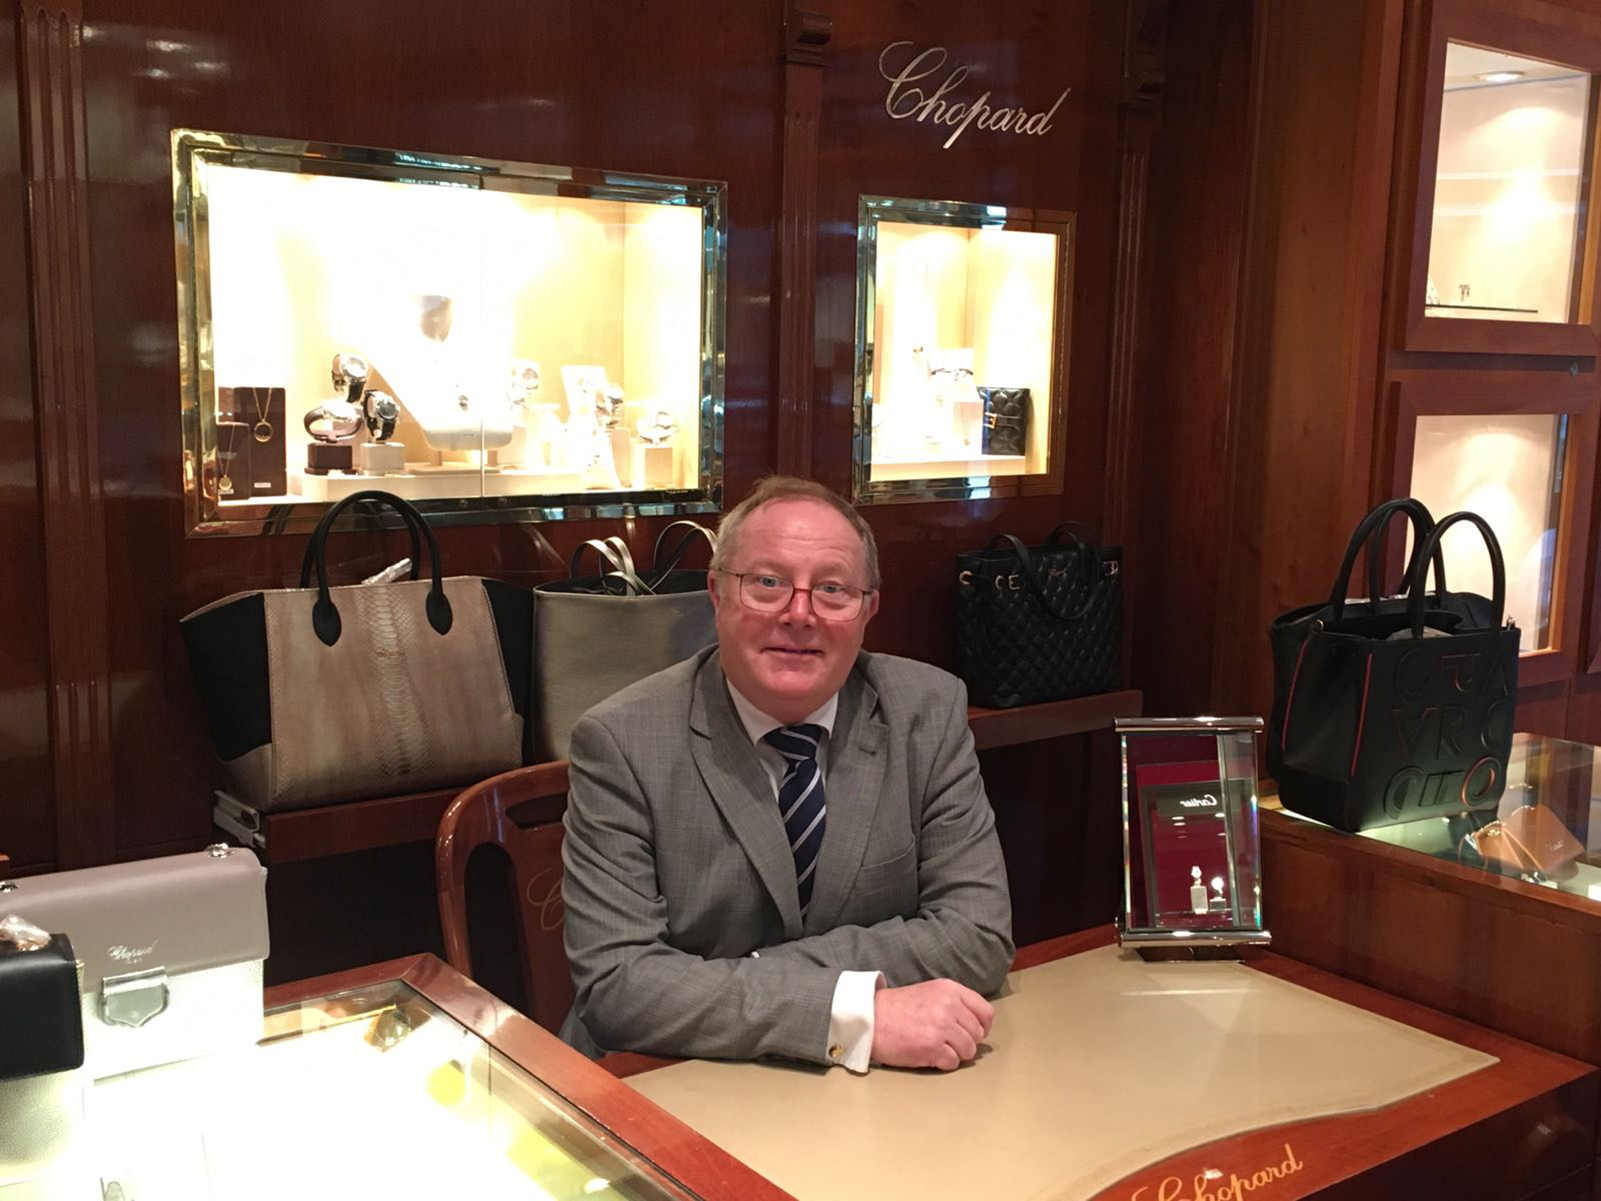 Peter Harrington is a familiar face to watch collectors in Wilmslow.